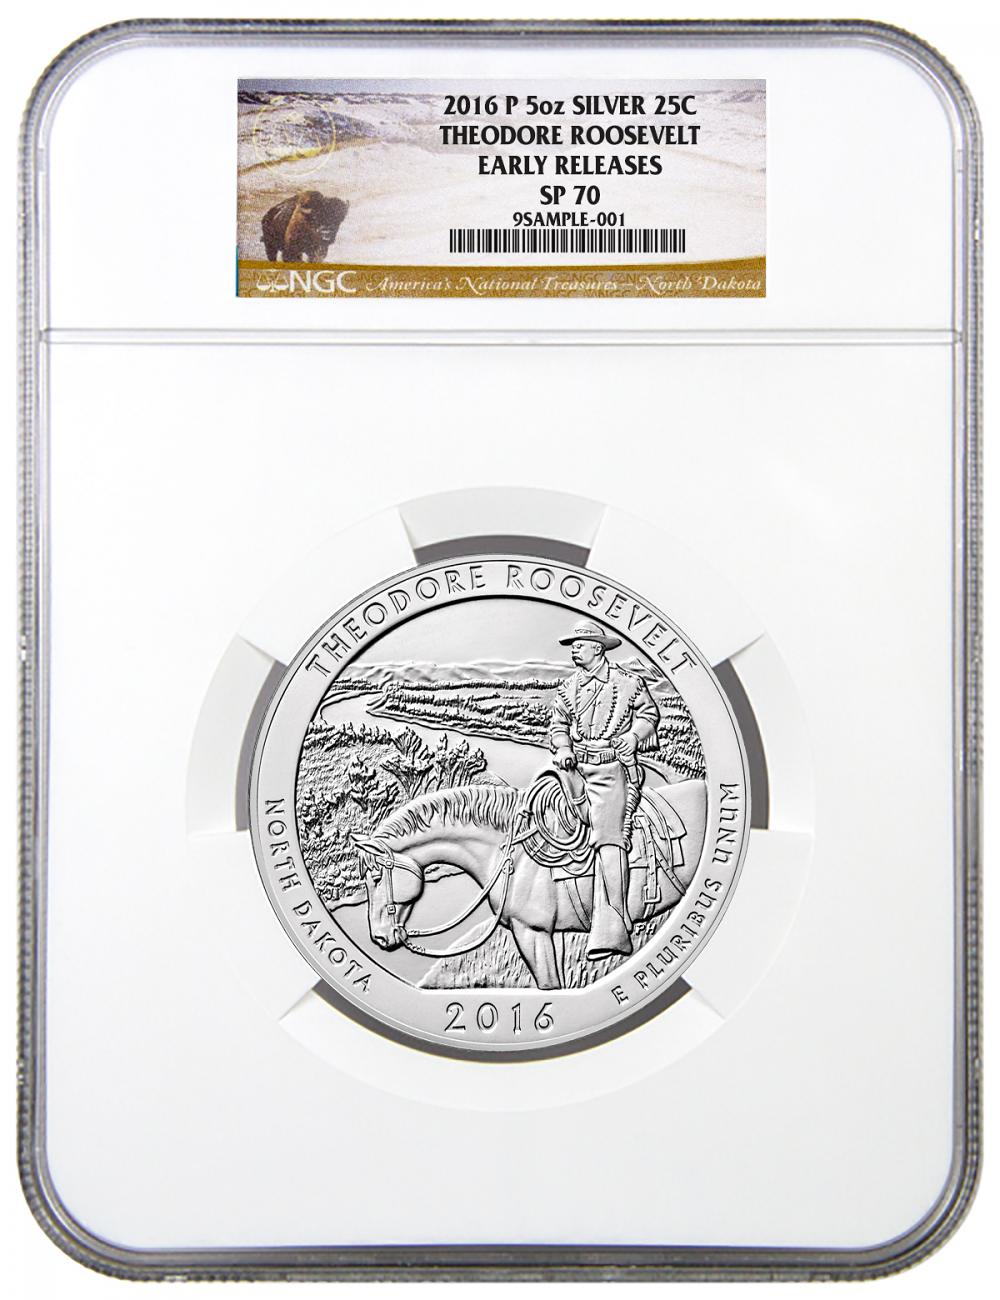 2016-P 25c 5 oz. Specimen Silver America the Beautiful - Theodore Roosevelt - NGC SP70 Early Releases